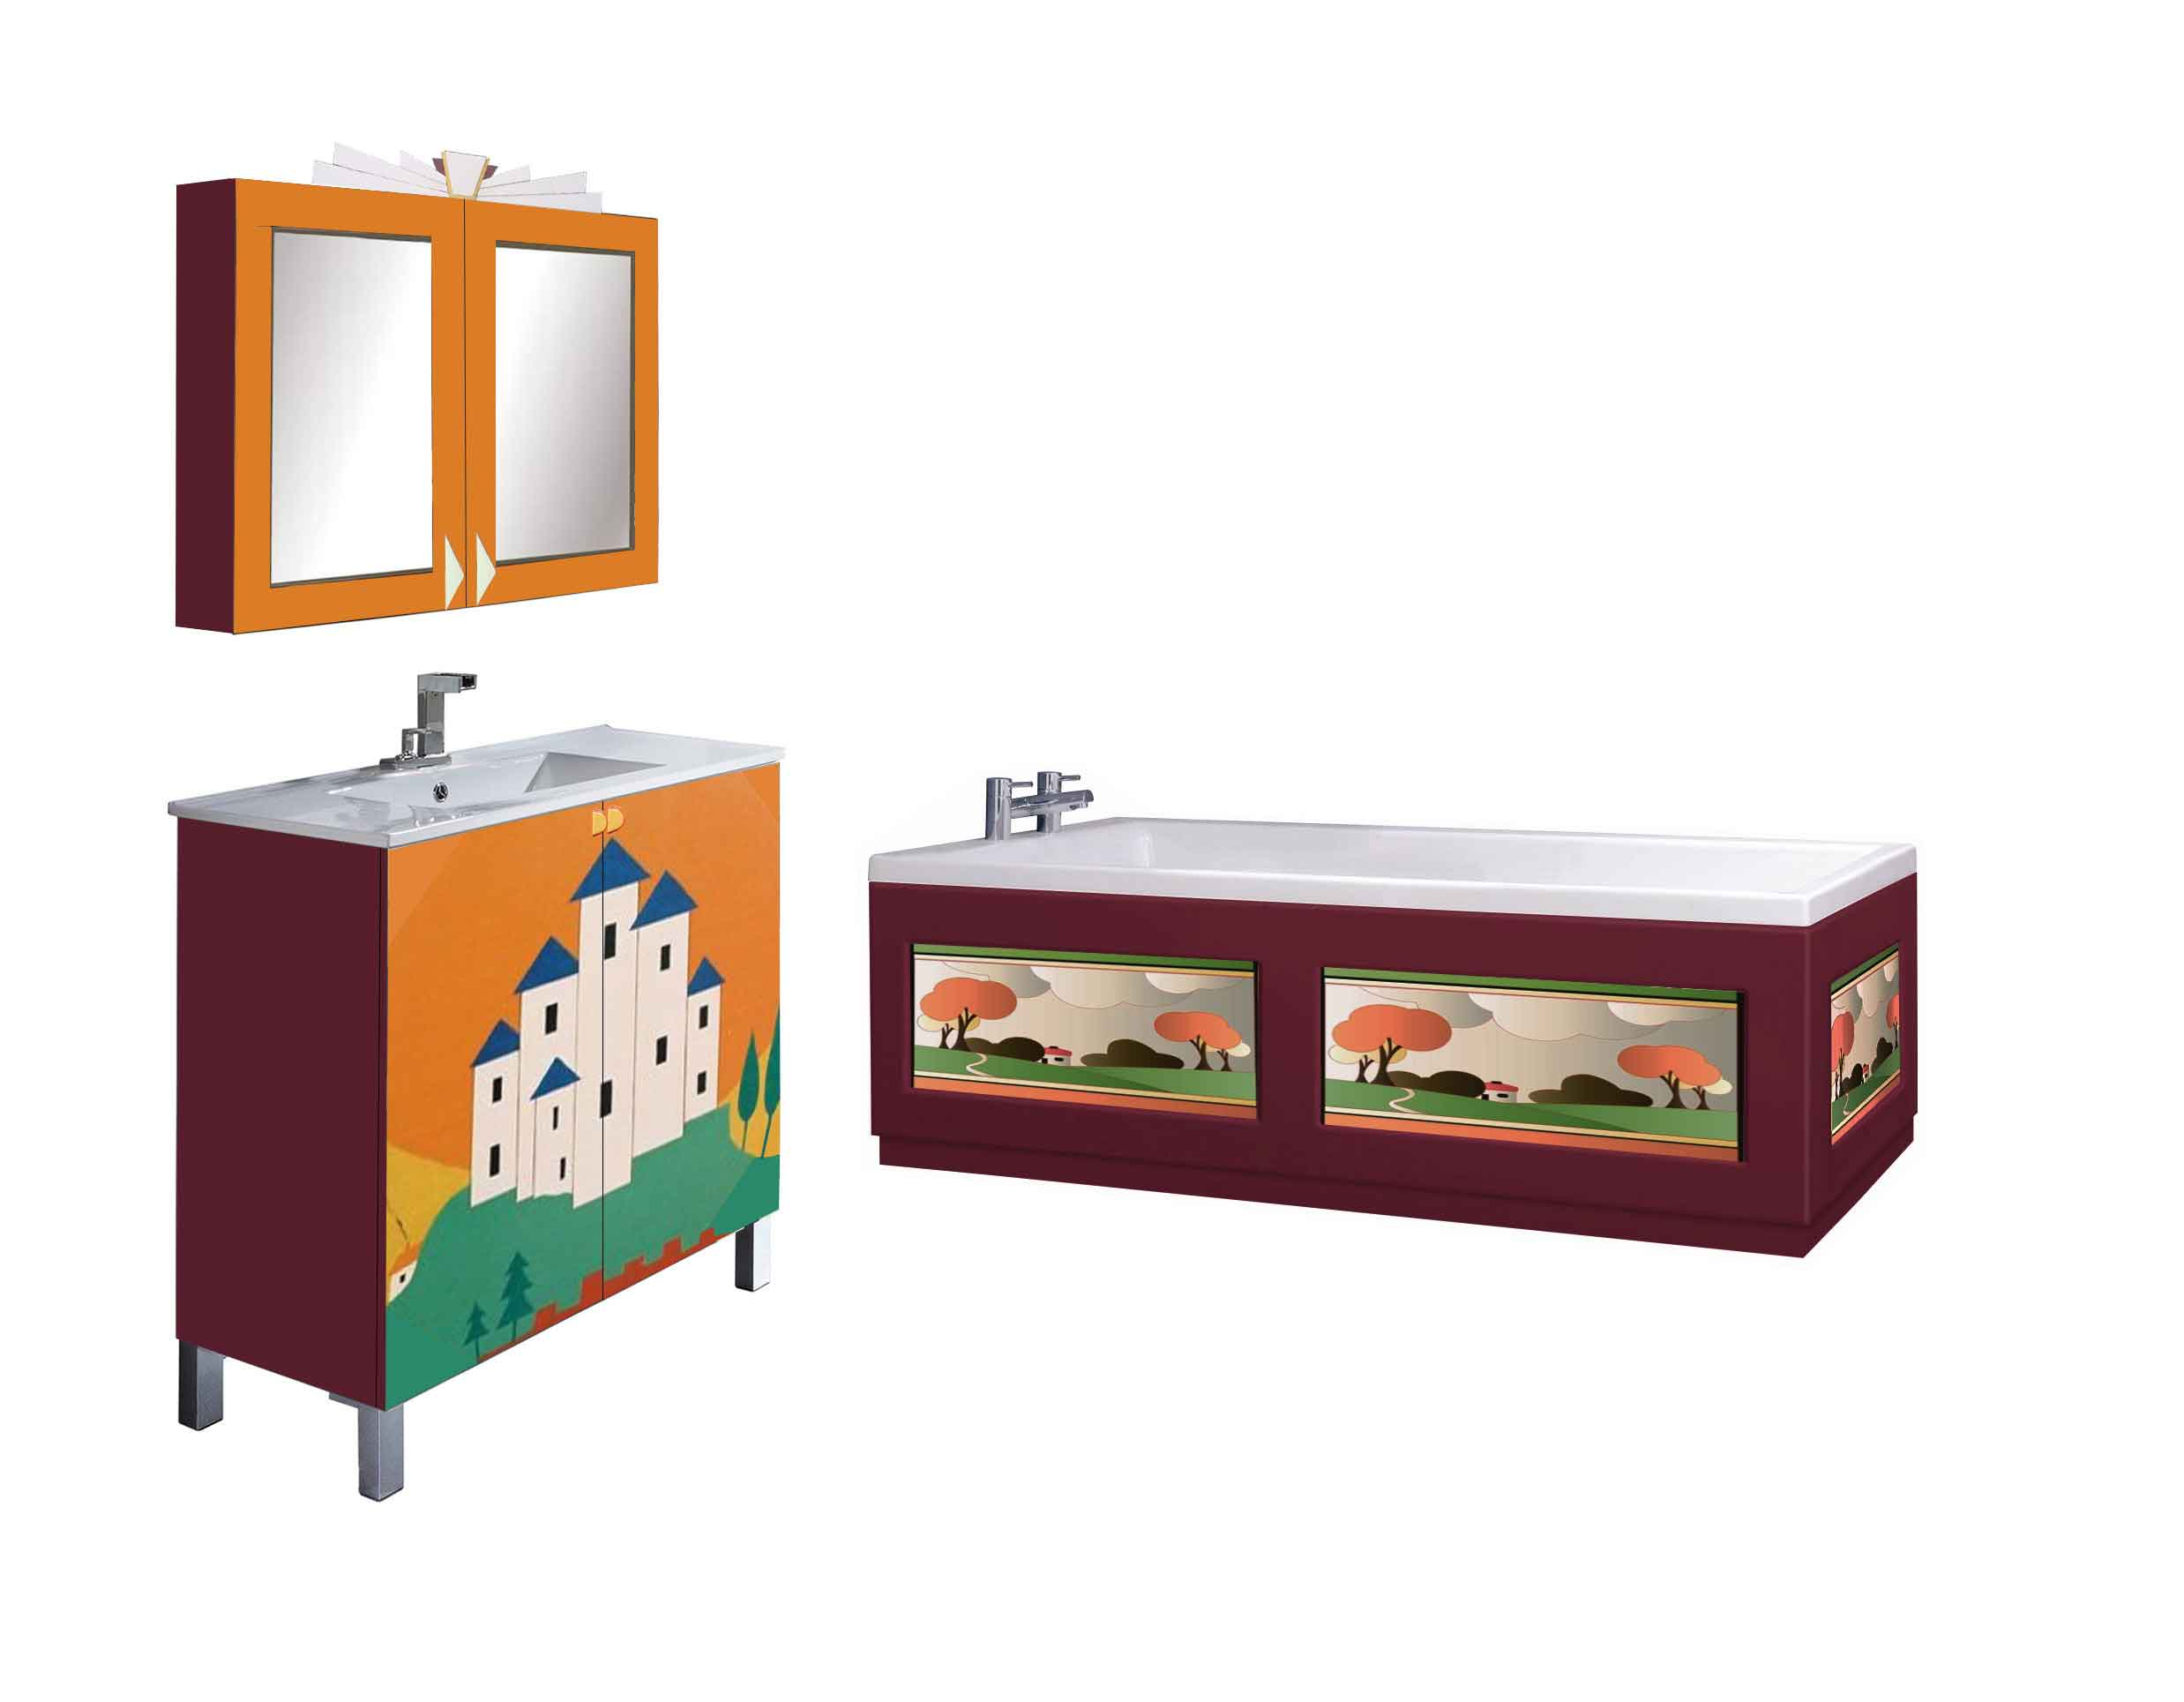 Clarice Cliff Art Deco design painted vanity units & wall mirror cupboards & bath panels & bathroom furniture